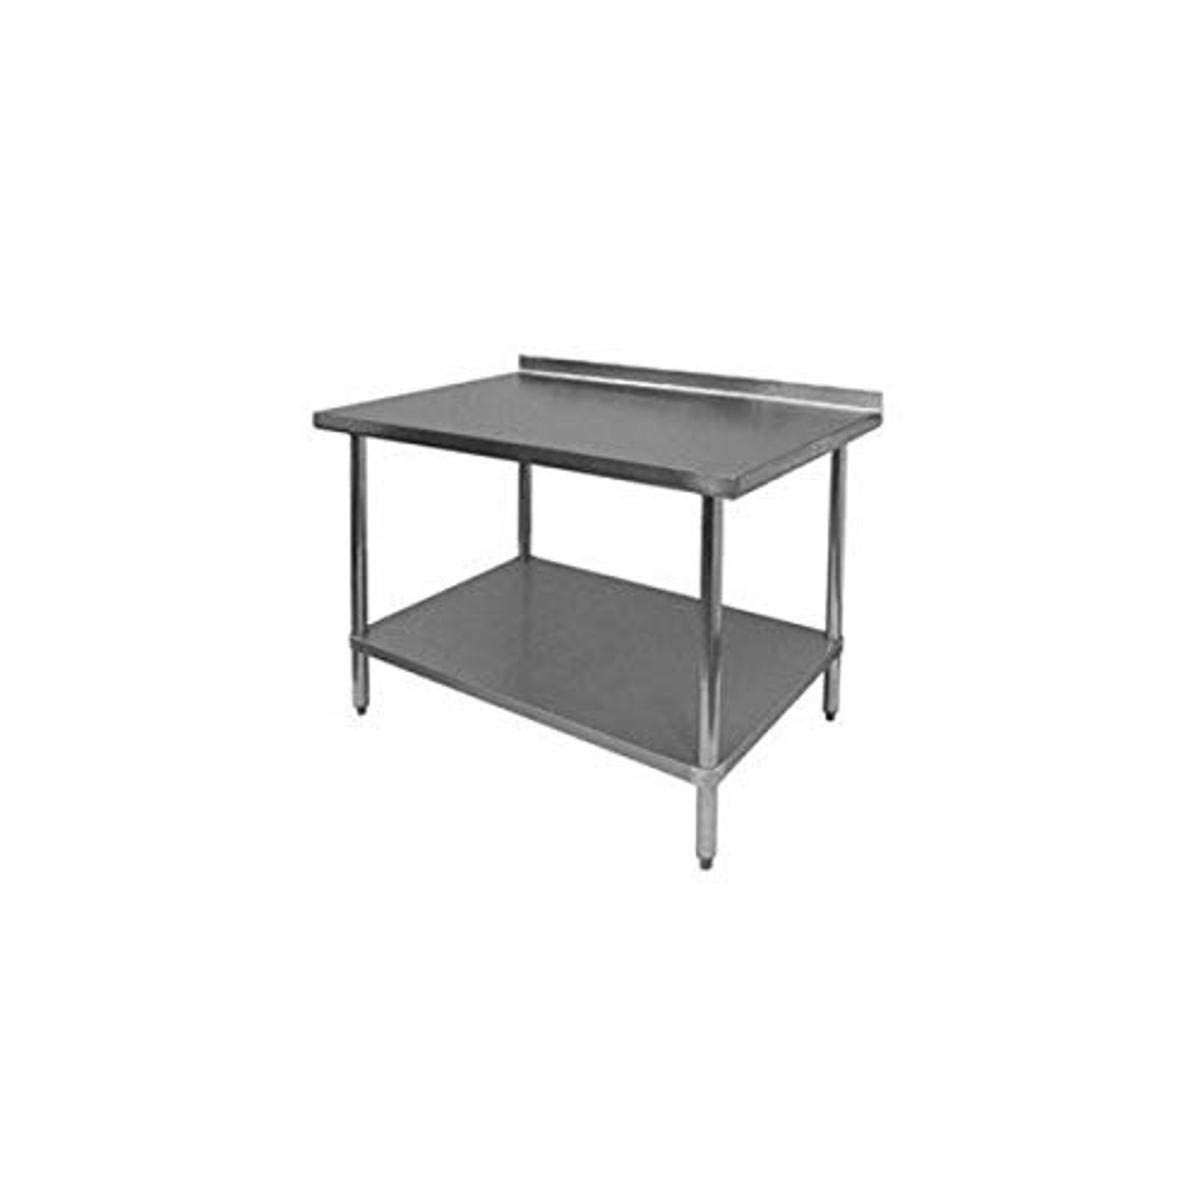 Johnson Rose 83073 Be super welcome Work Table with Stai 430 Rear Up-Turn 2